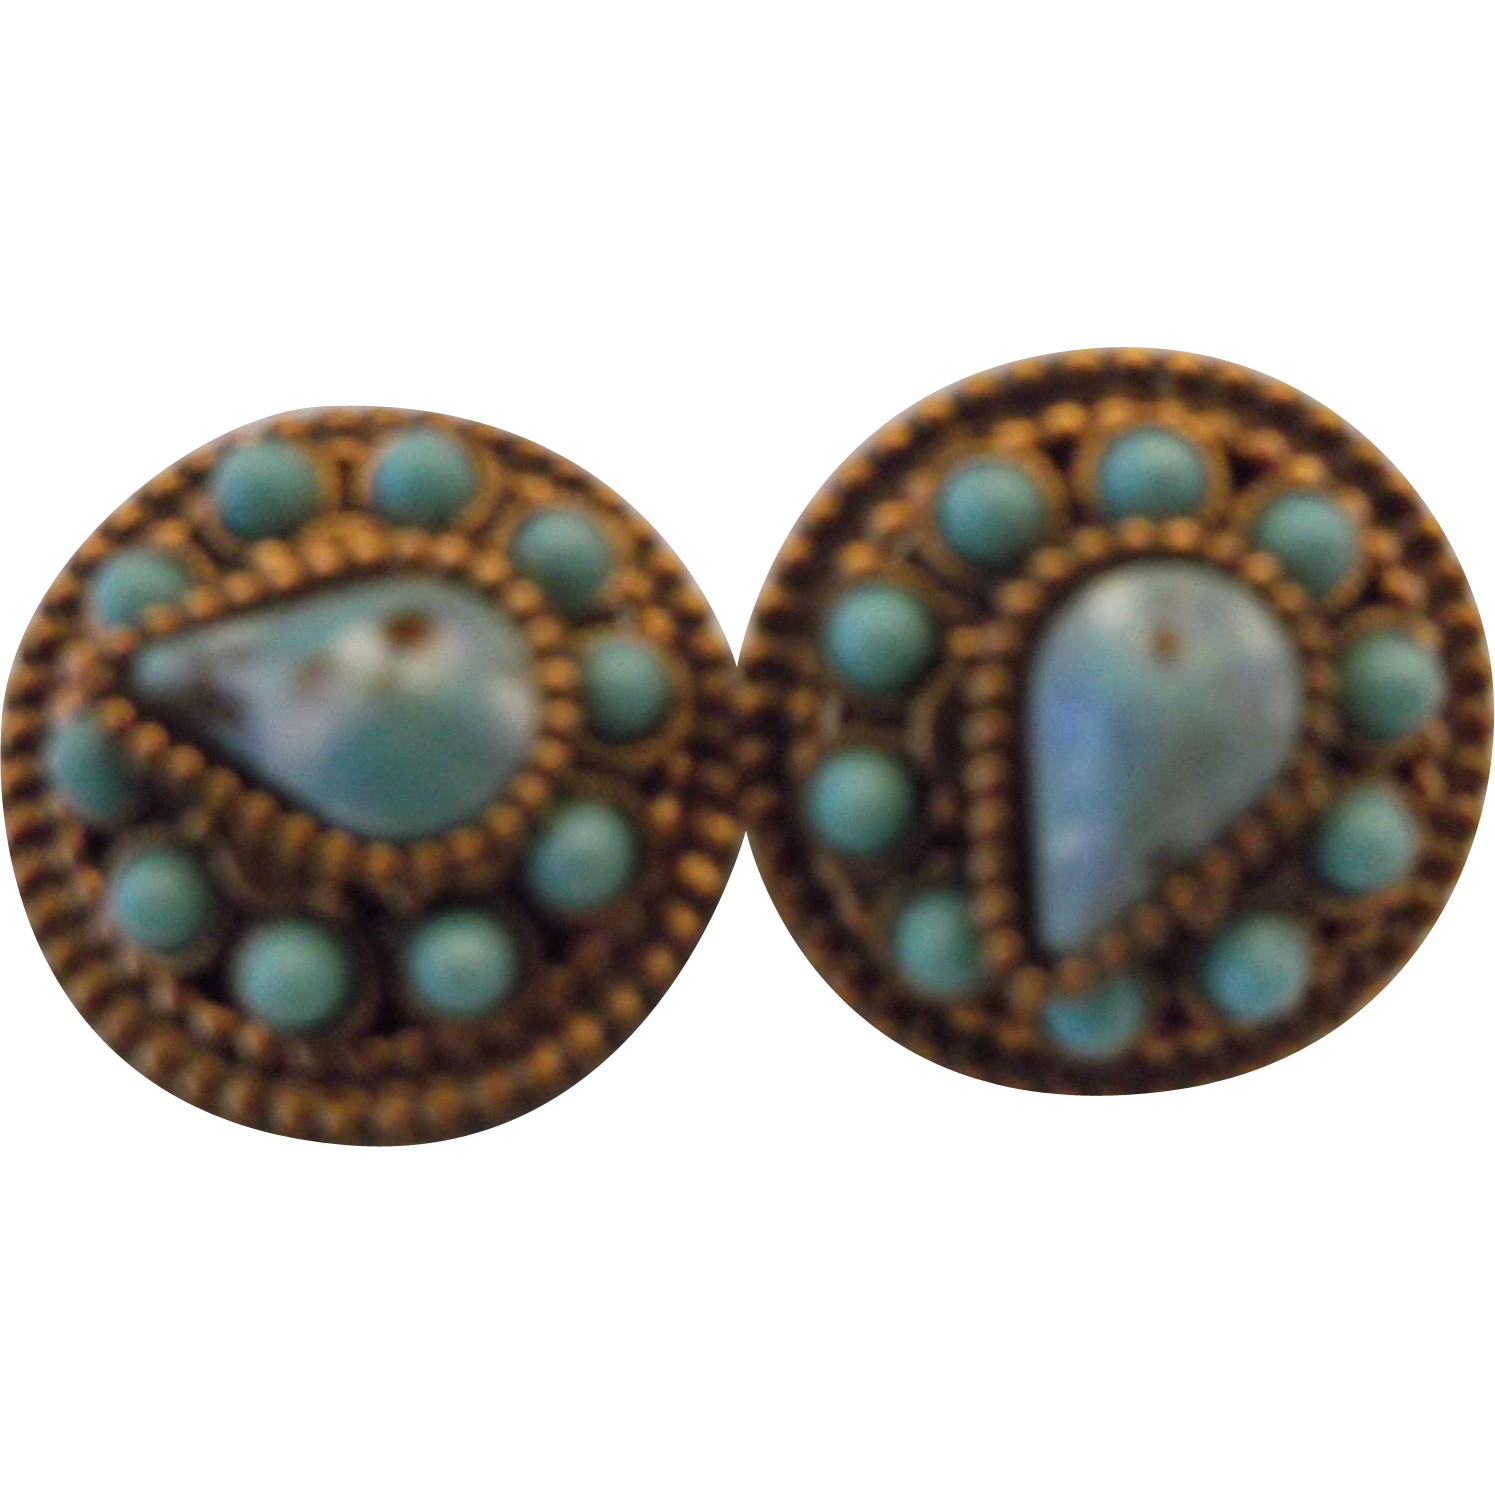 Copper Circle Screwback Earrings Turquoise Plastic Pear Round Cabs